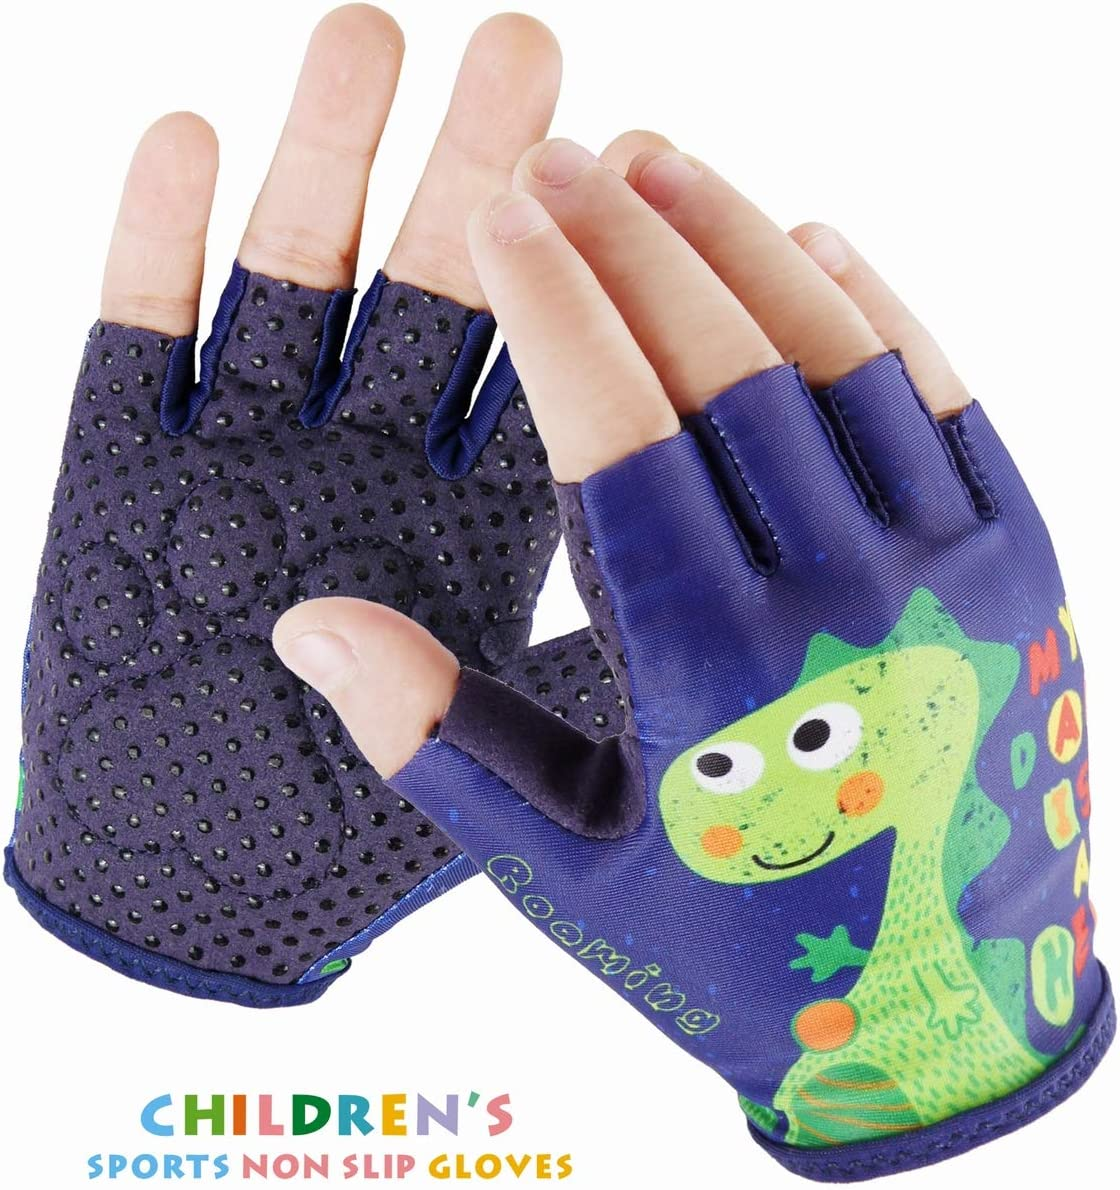 Kids Half-Finger Monkey Bar Gloves for Age 1-9 Boys Girls Climbing Biking Good Grip Control Gloves for Gymnastics Balance Boards Outdoor Sports